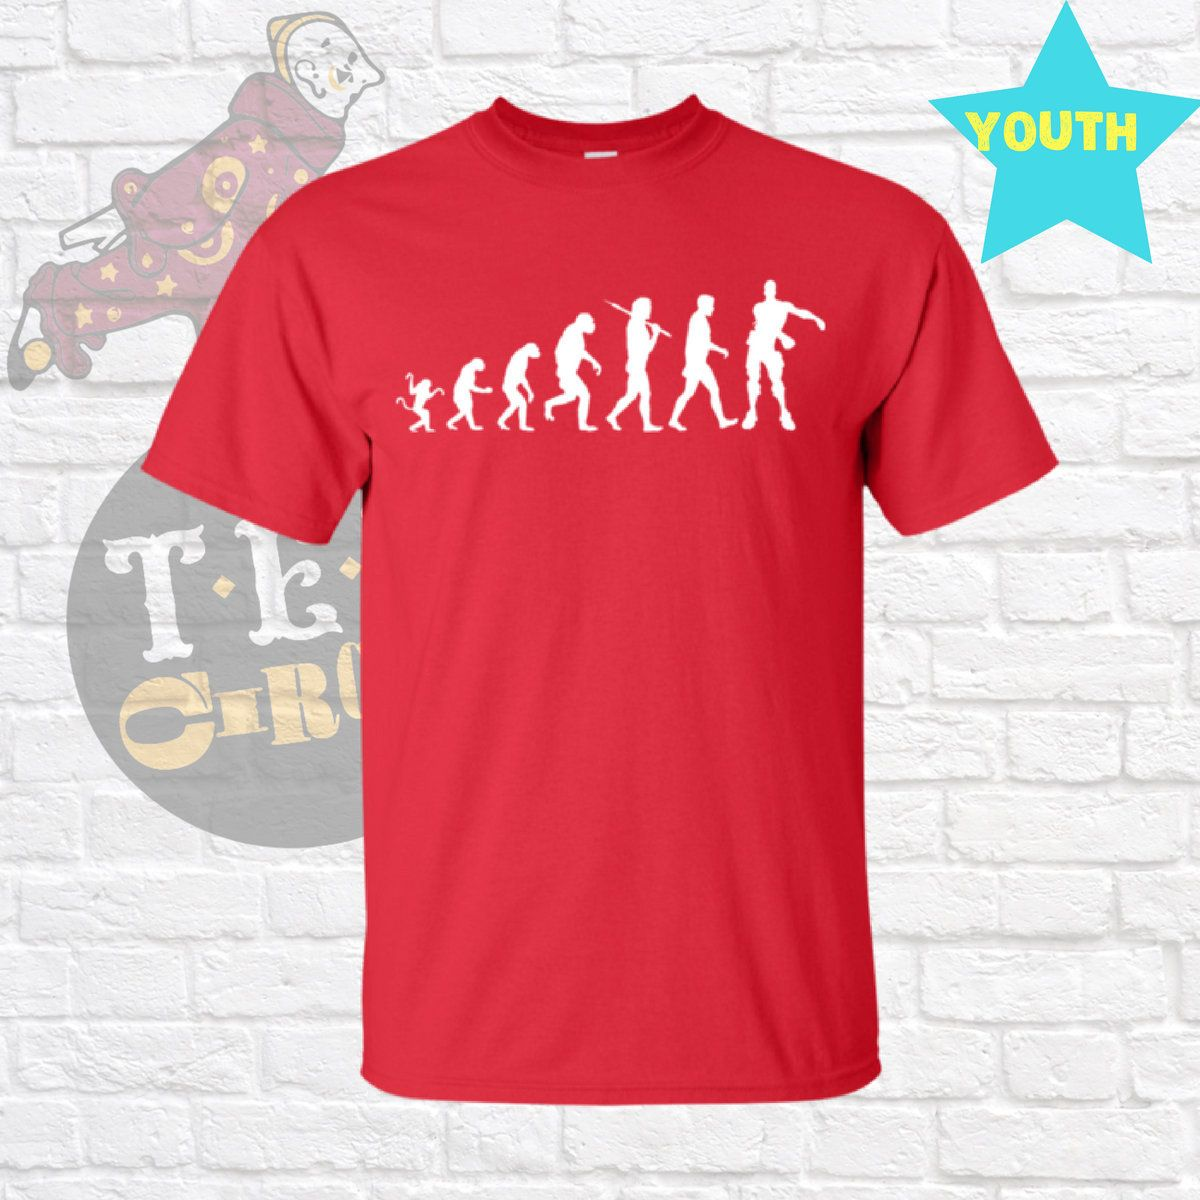 9556fa4e Fortnite Inspired, Fortnite Dance, Floss, Fortnite Shirt, Fortnite Game,  Fortnite Birthday, Fortnite Gift, Fortnite Party, Battle Royale by  TeeCircus on ...